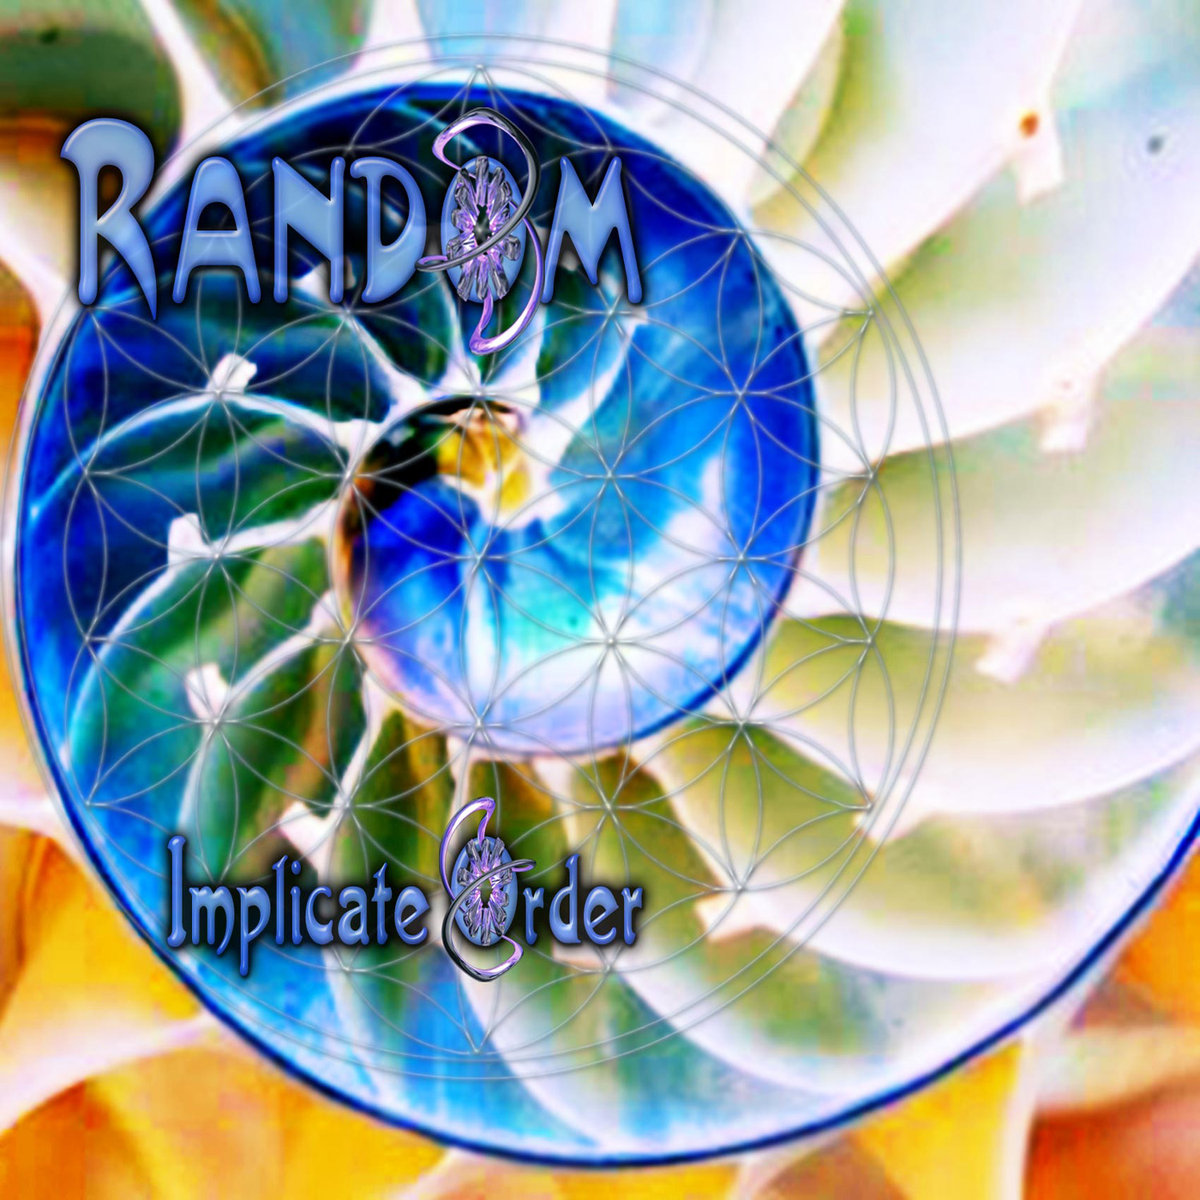 Random - Evil Words @ 'The Implicate Order' album (electronic, goa)